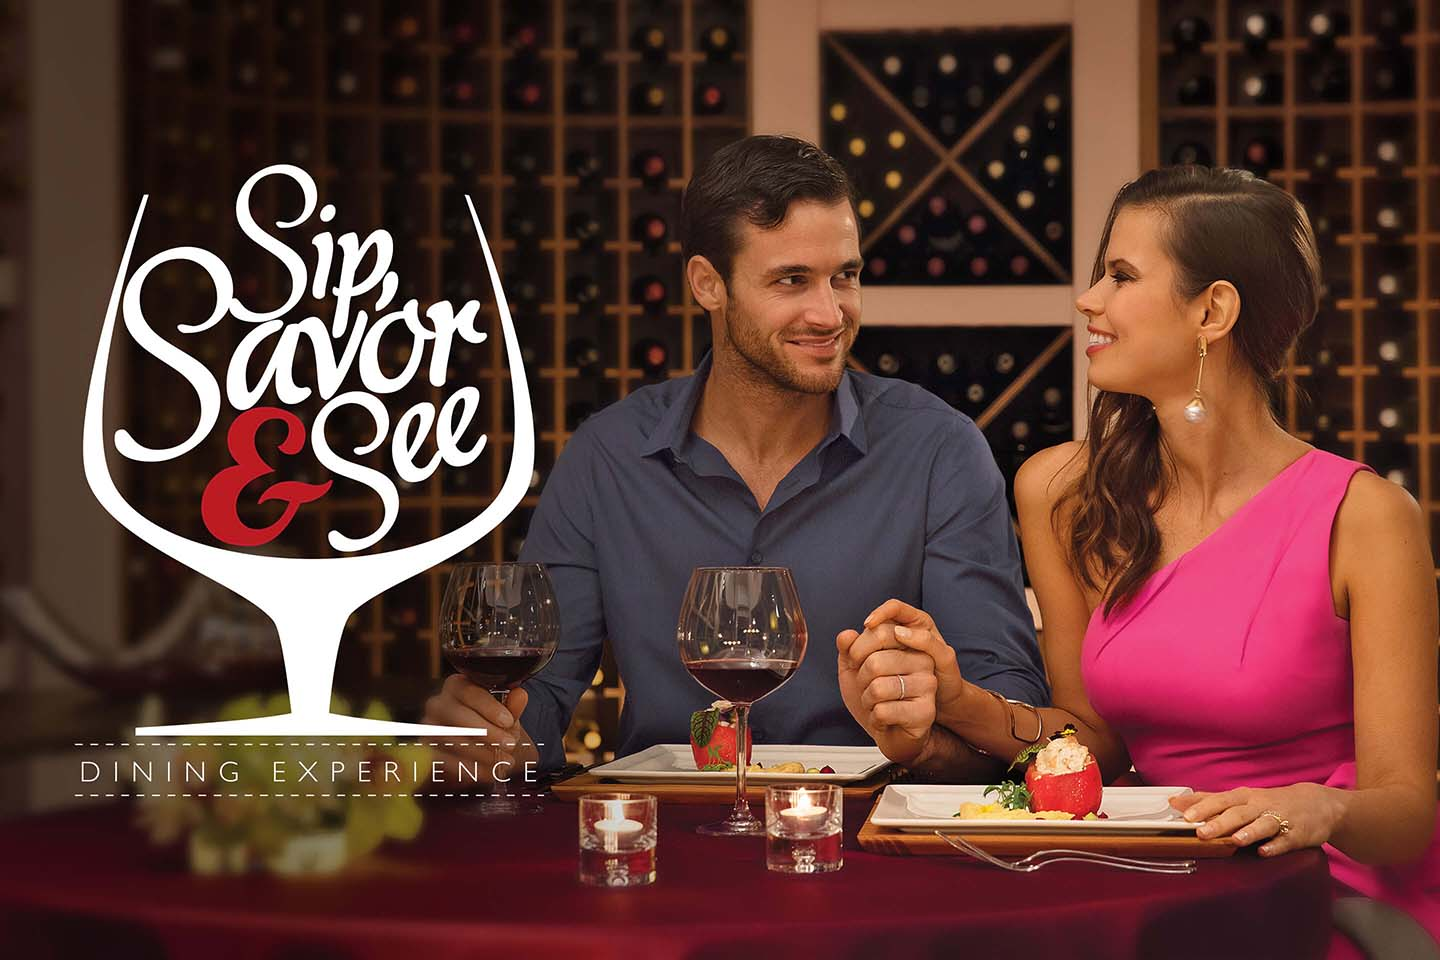 Sip, Savor & See Dining Experience